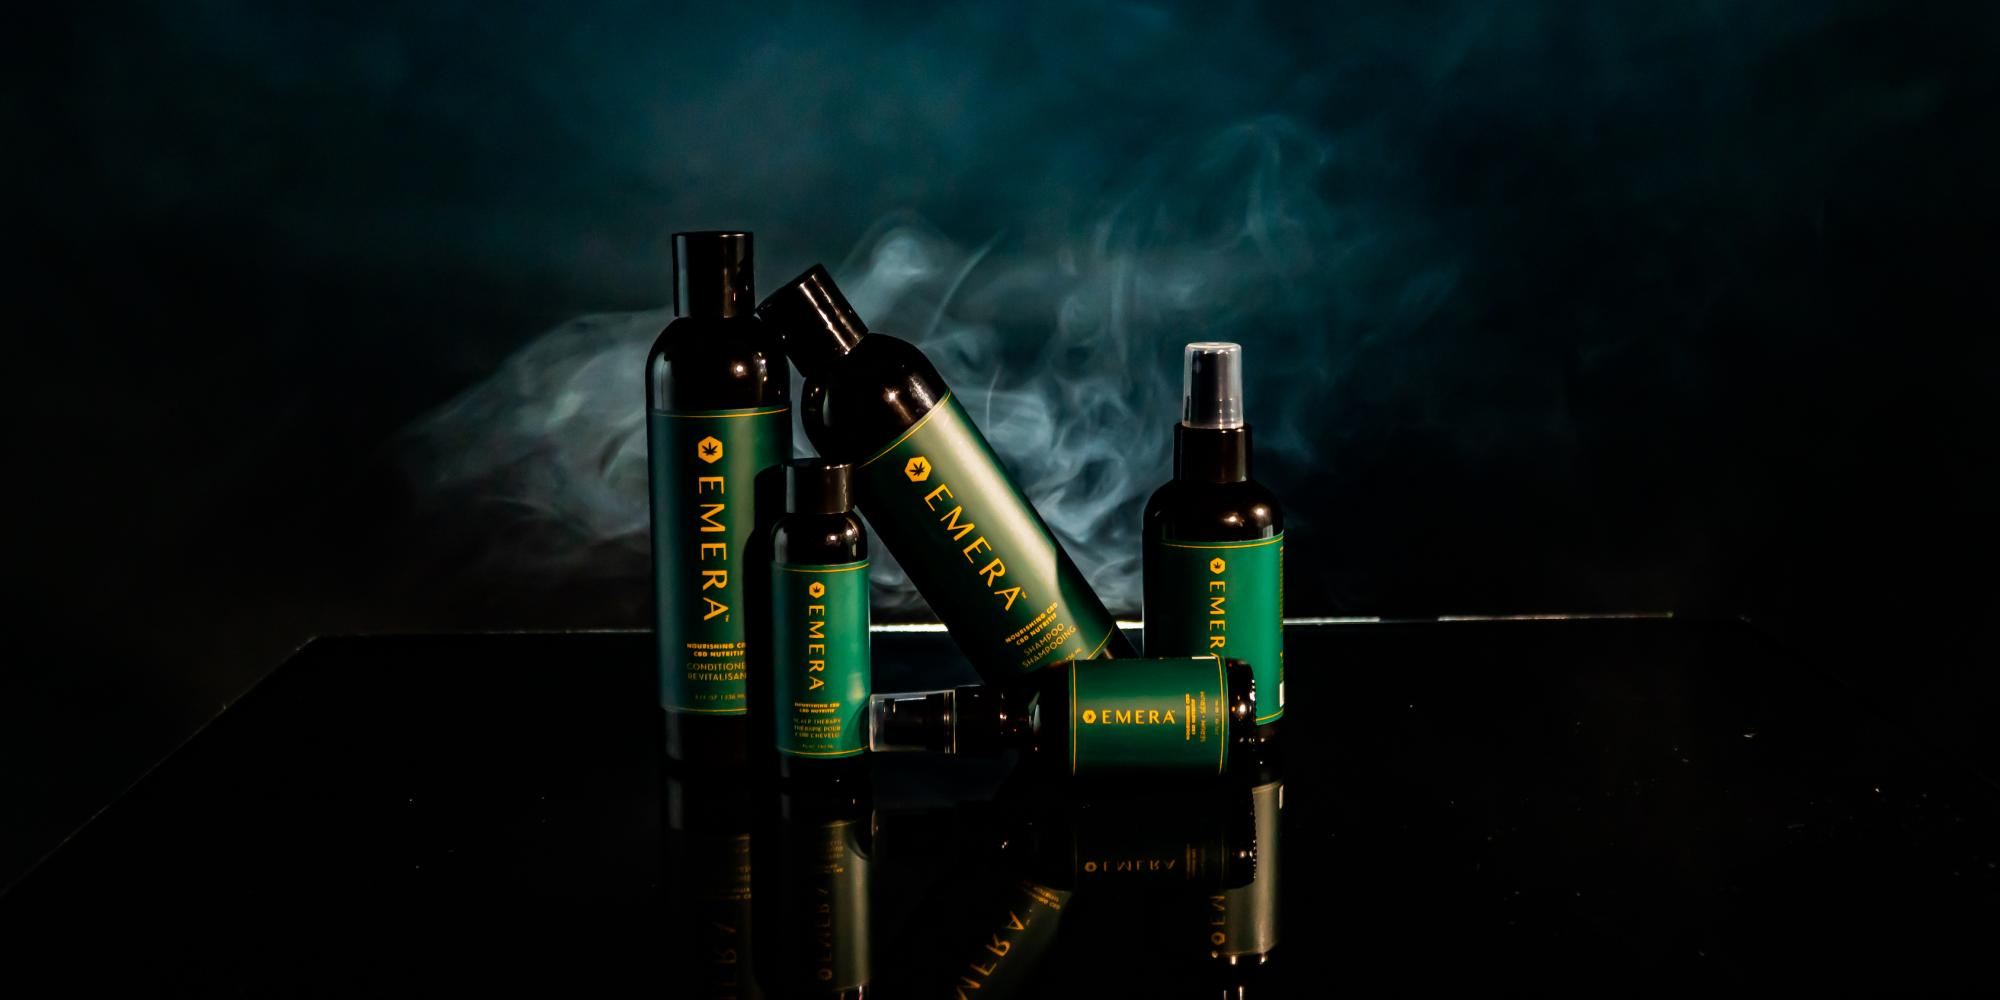 Earthly Body Launches CBD-Infused Professional Haircare Range Emera